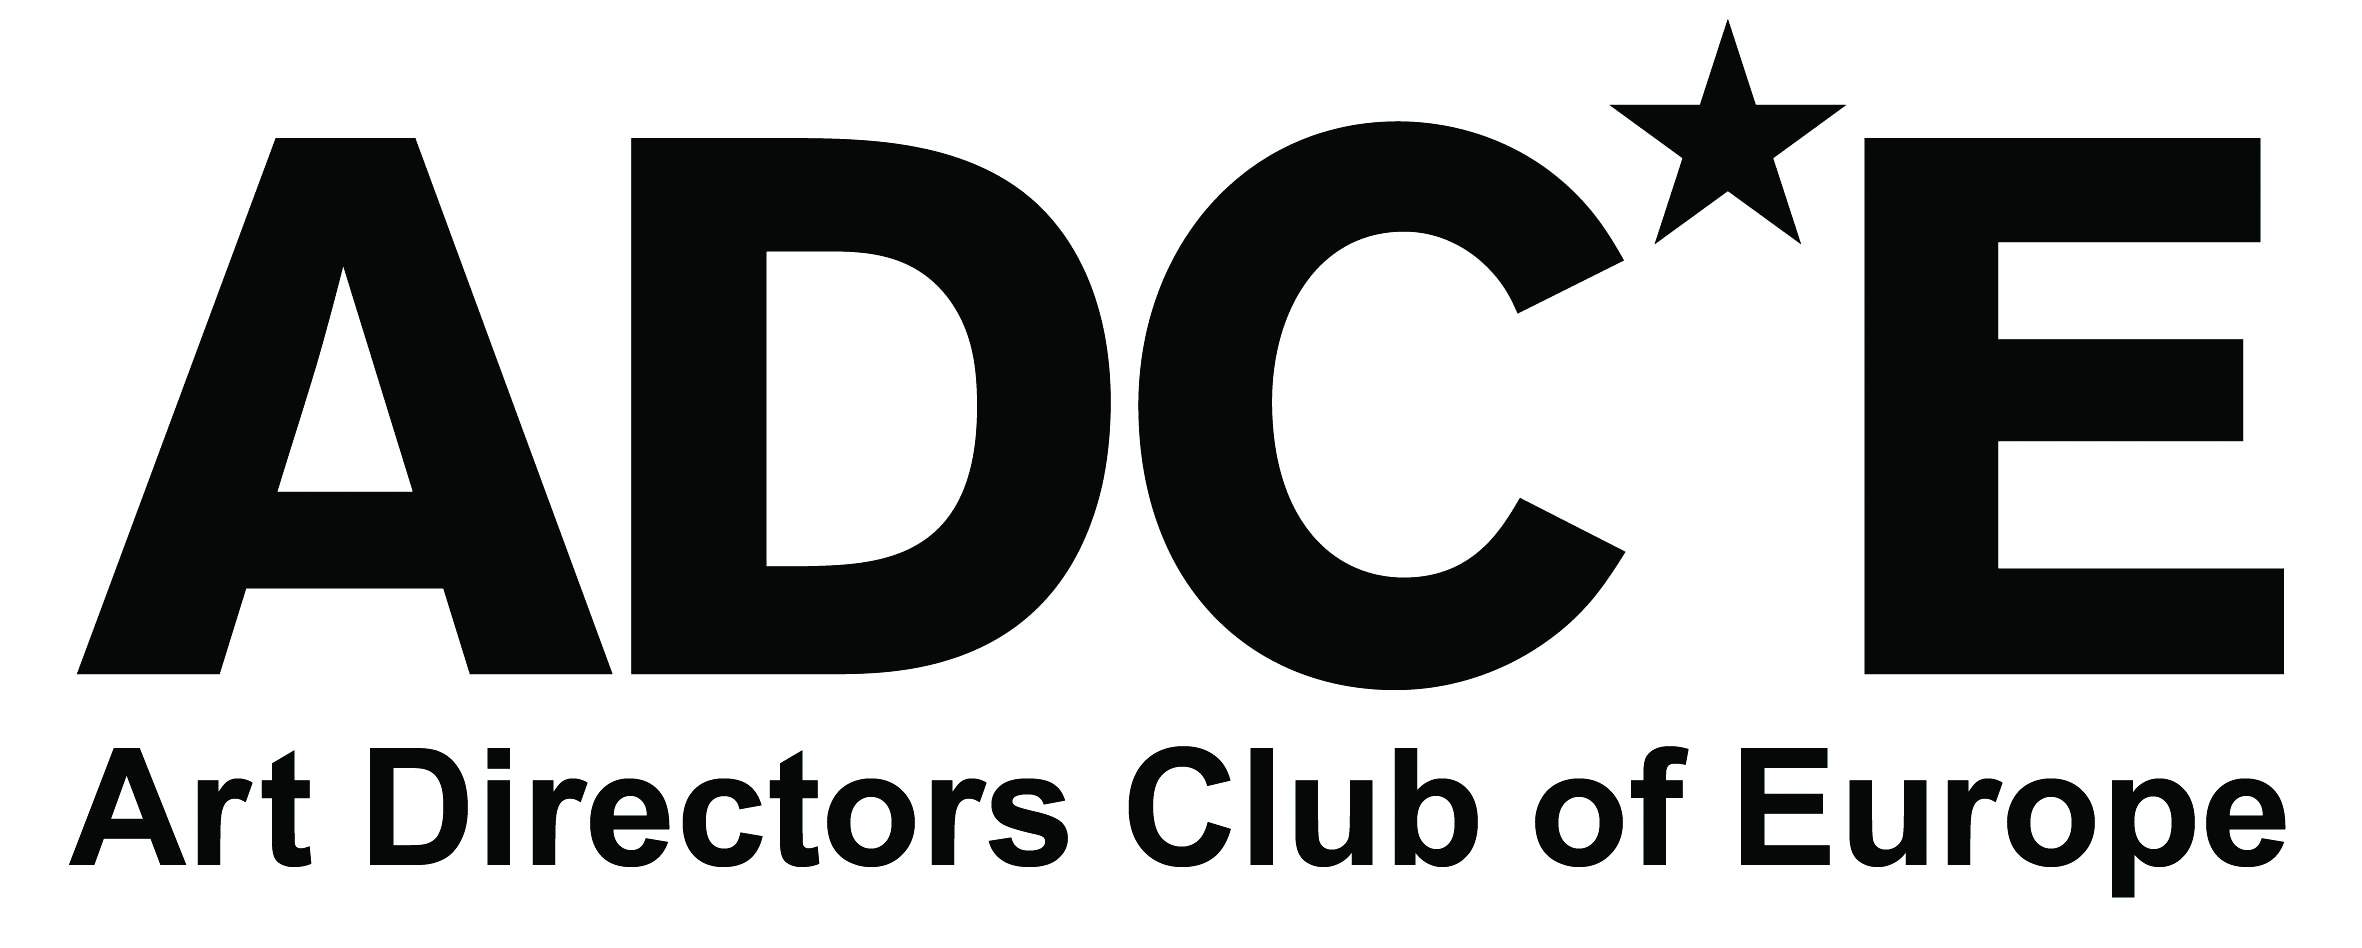 logo for Art Directors Club of Europe